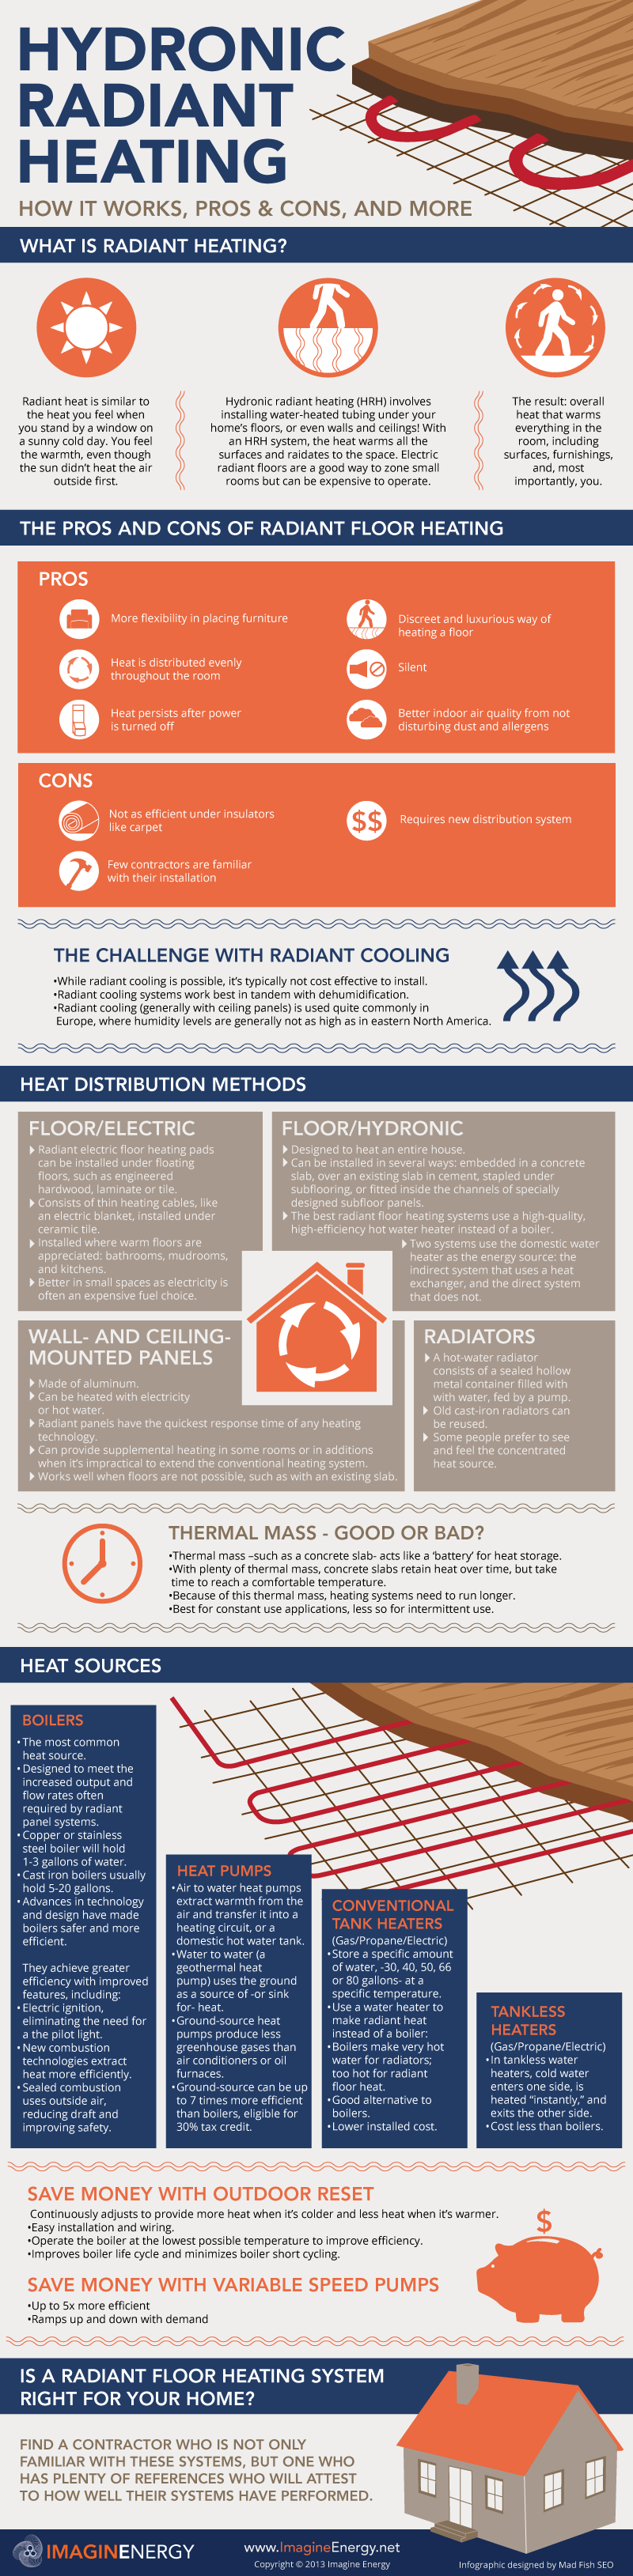 Hydronic Radiant Heating: How it Works, Pros & Cons, And More